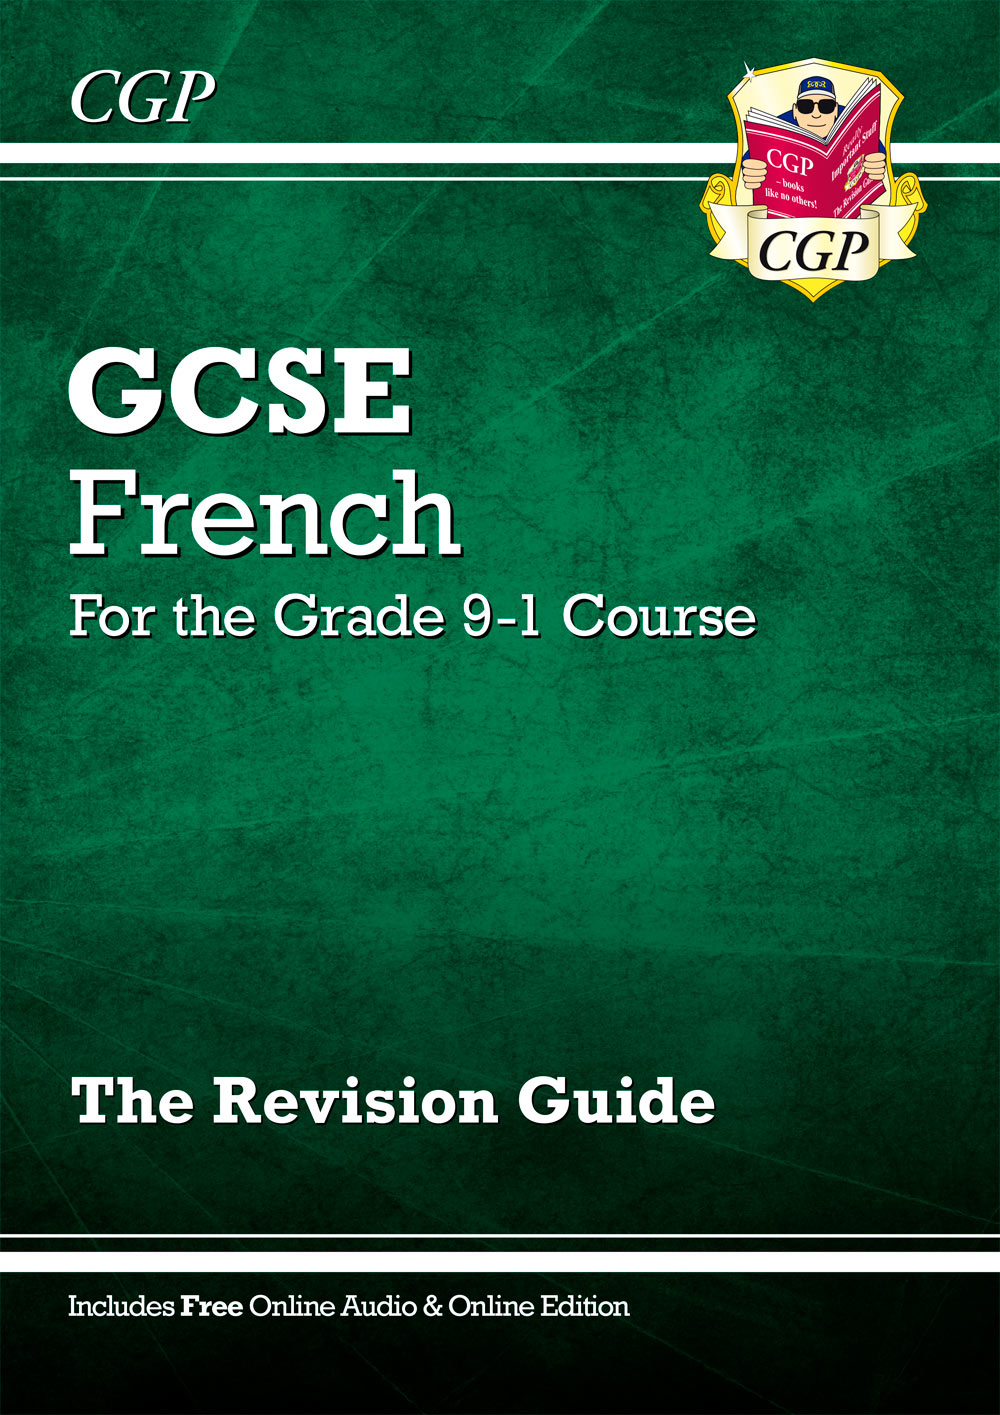 FHR44 - New GCSE French Revision Guide - for the Grade 9-1 Course (with Online Edition)